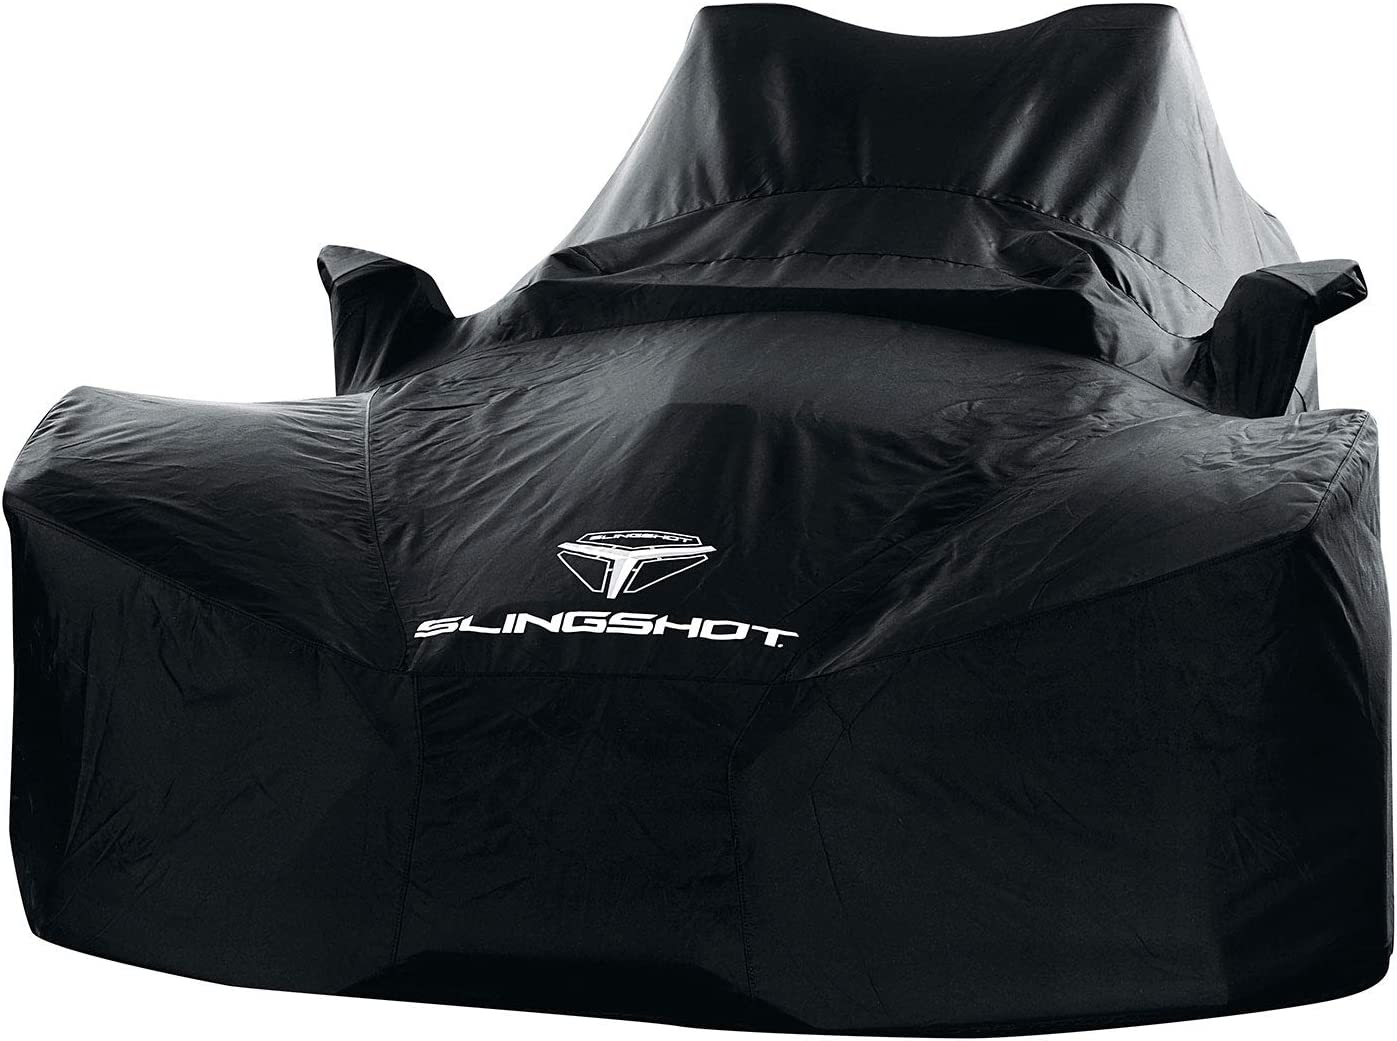 Polaris Slingshot All-Weather - Raleigh Mall Black Cover Max 81% OFF